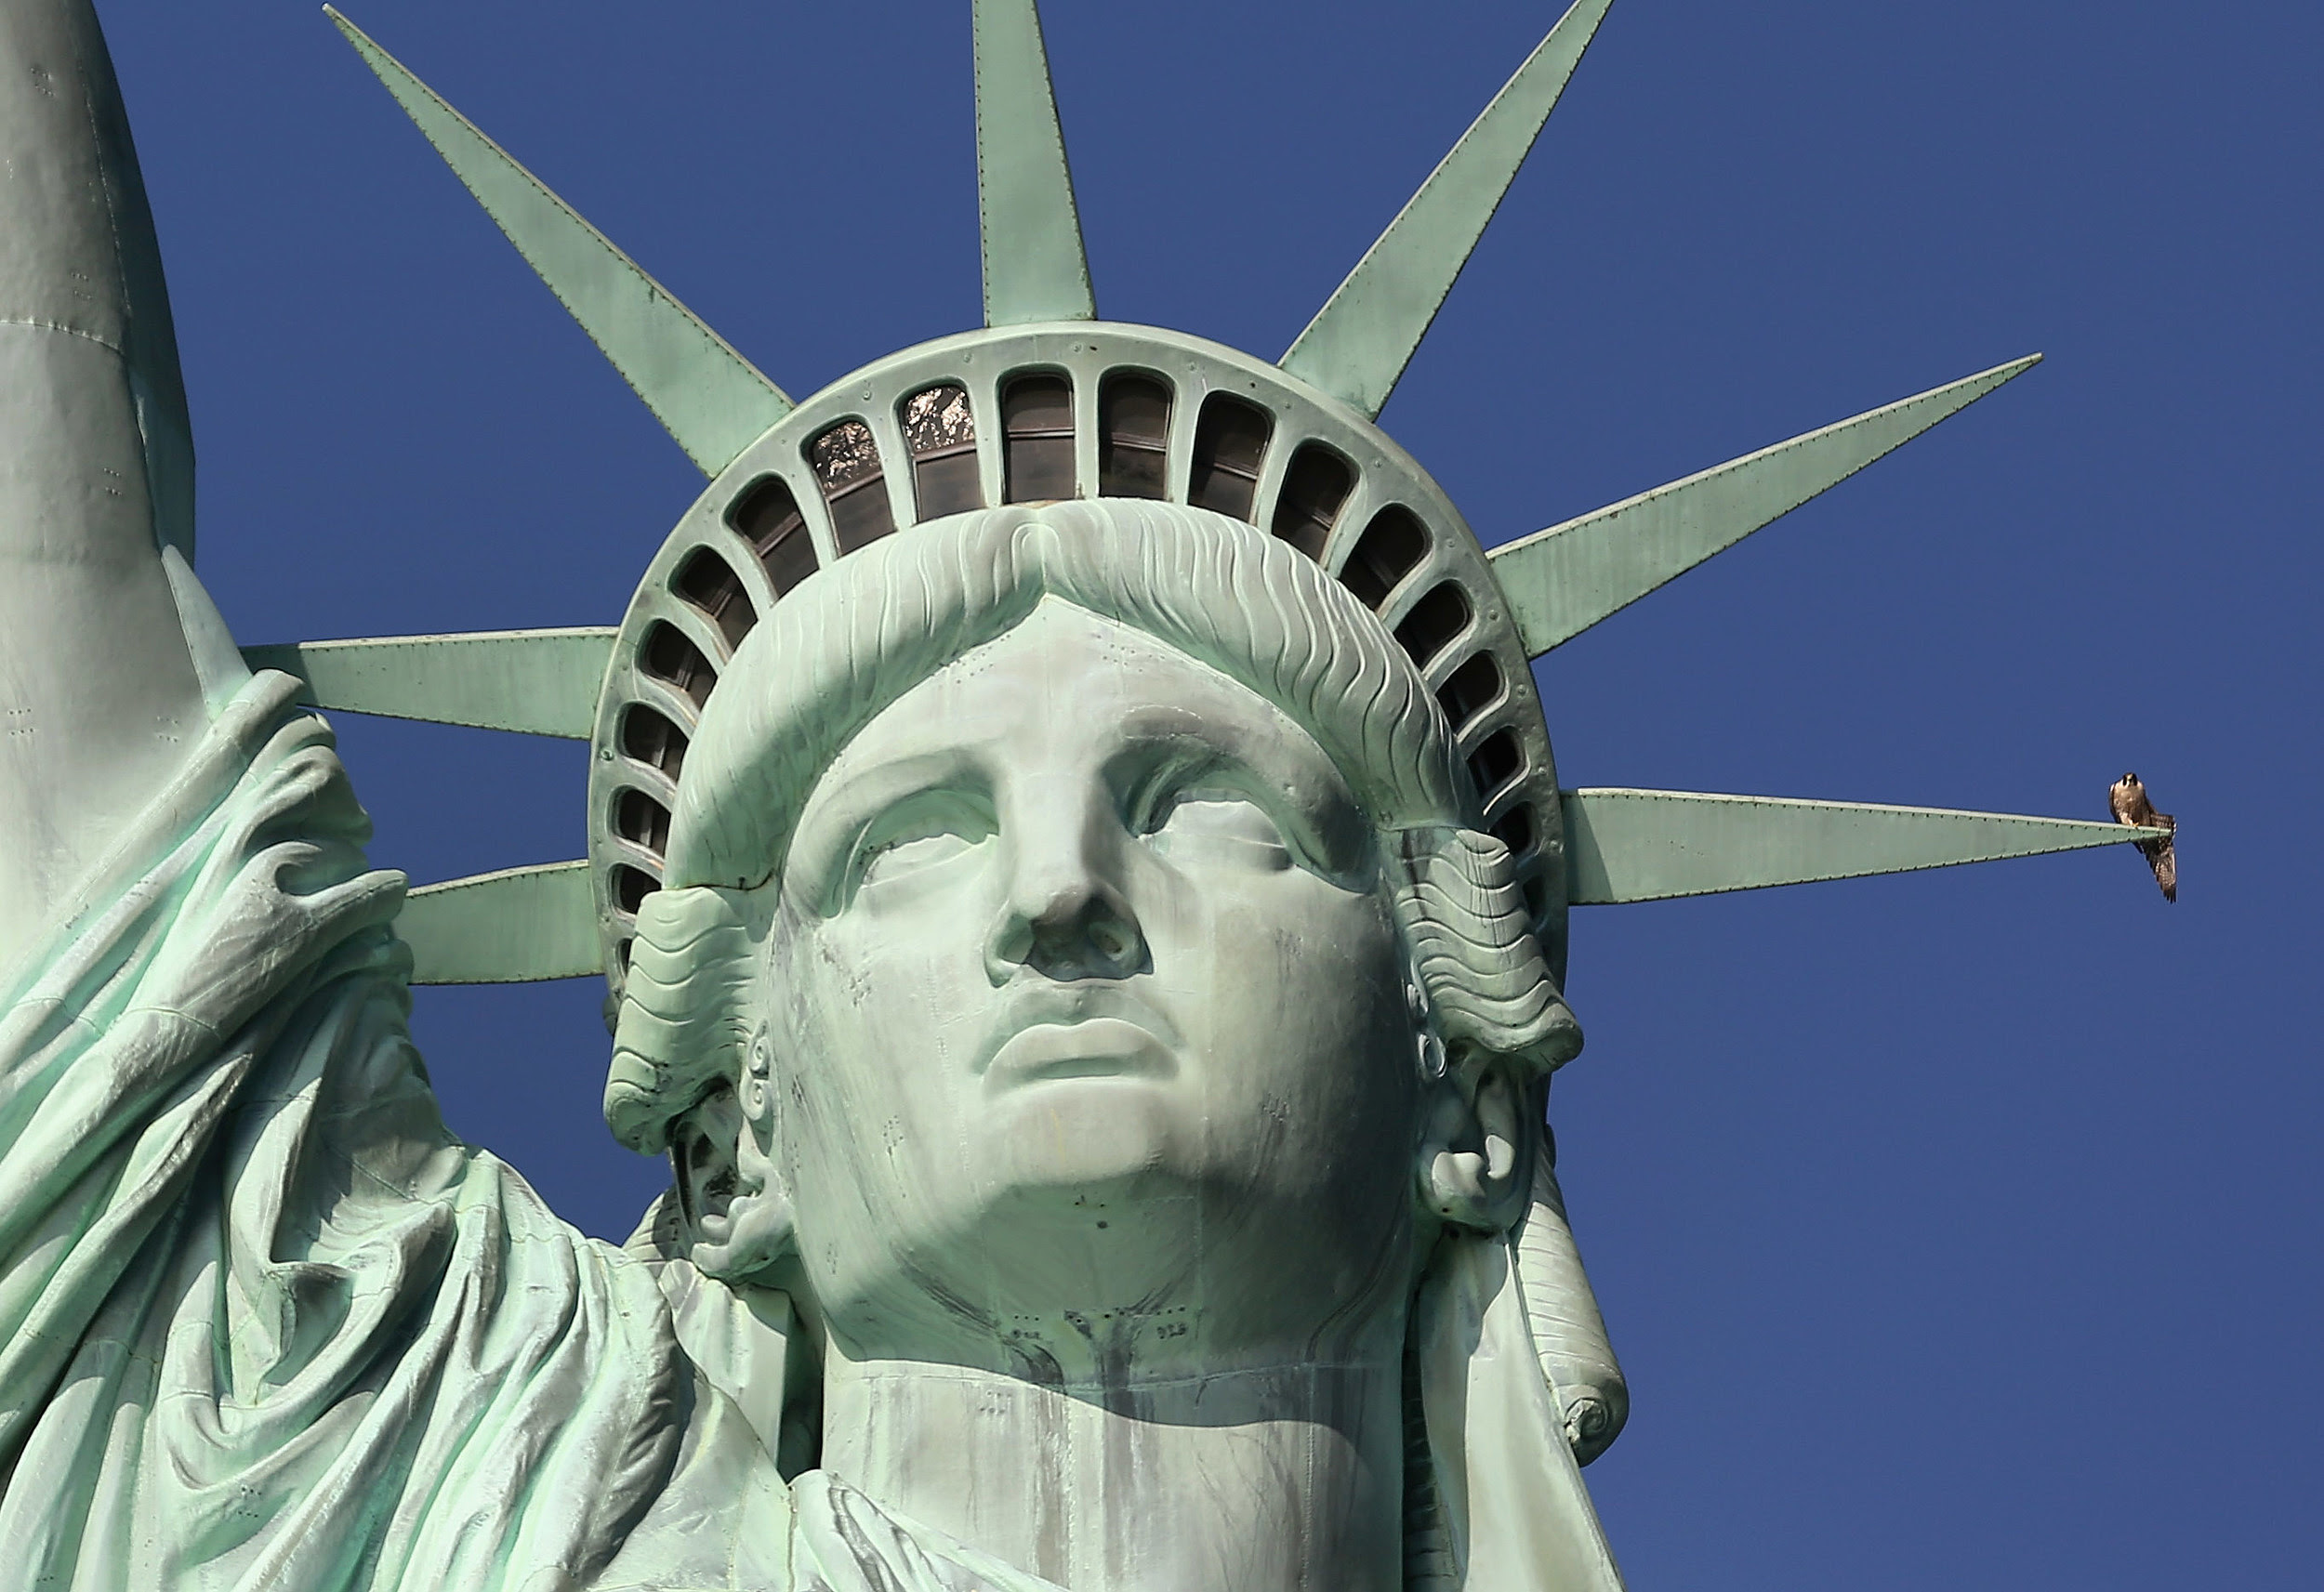 Is The Statue Of Liberty In New York Or New Jersey Cool Facts